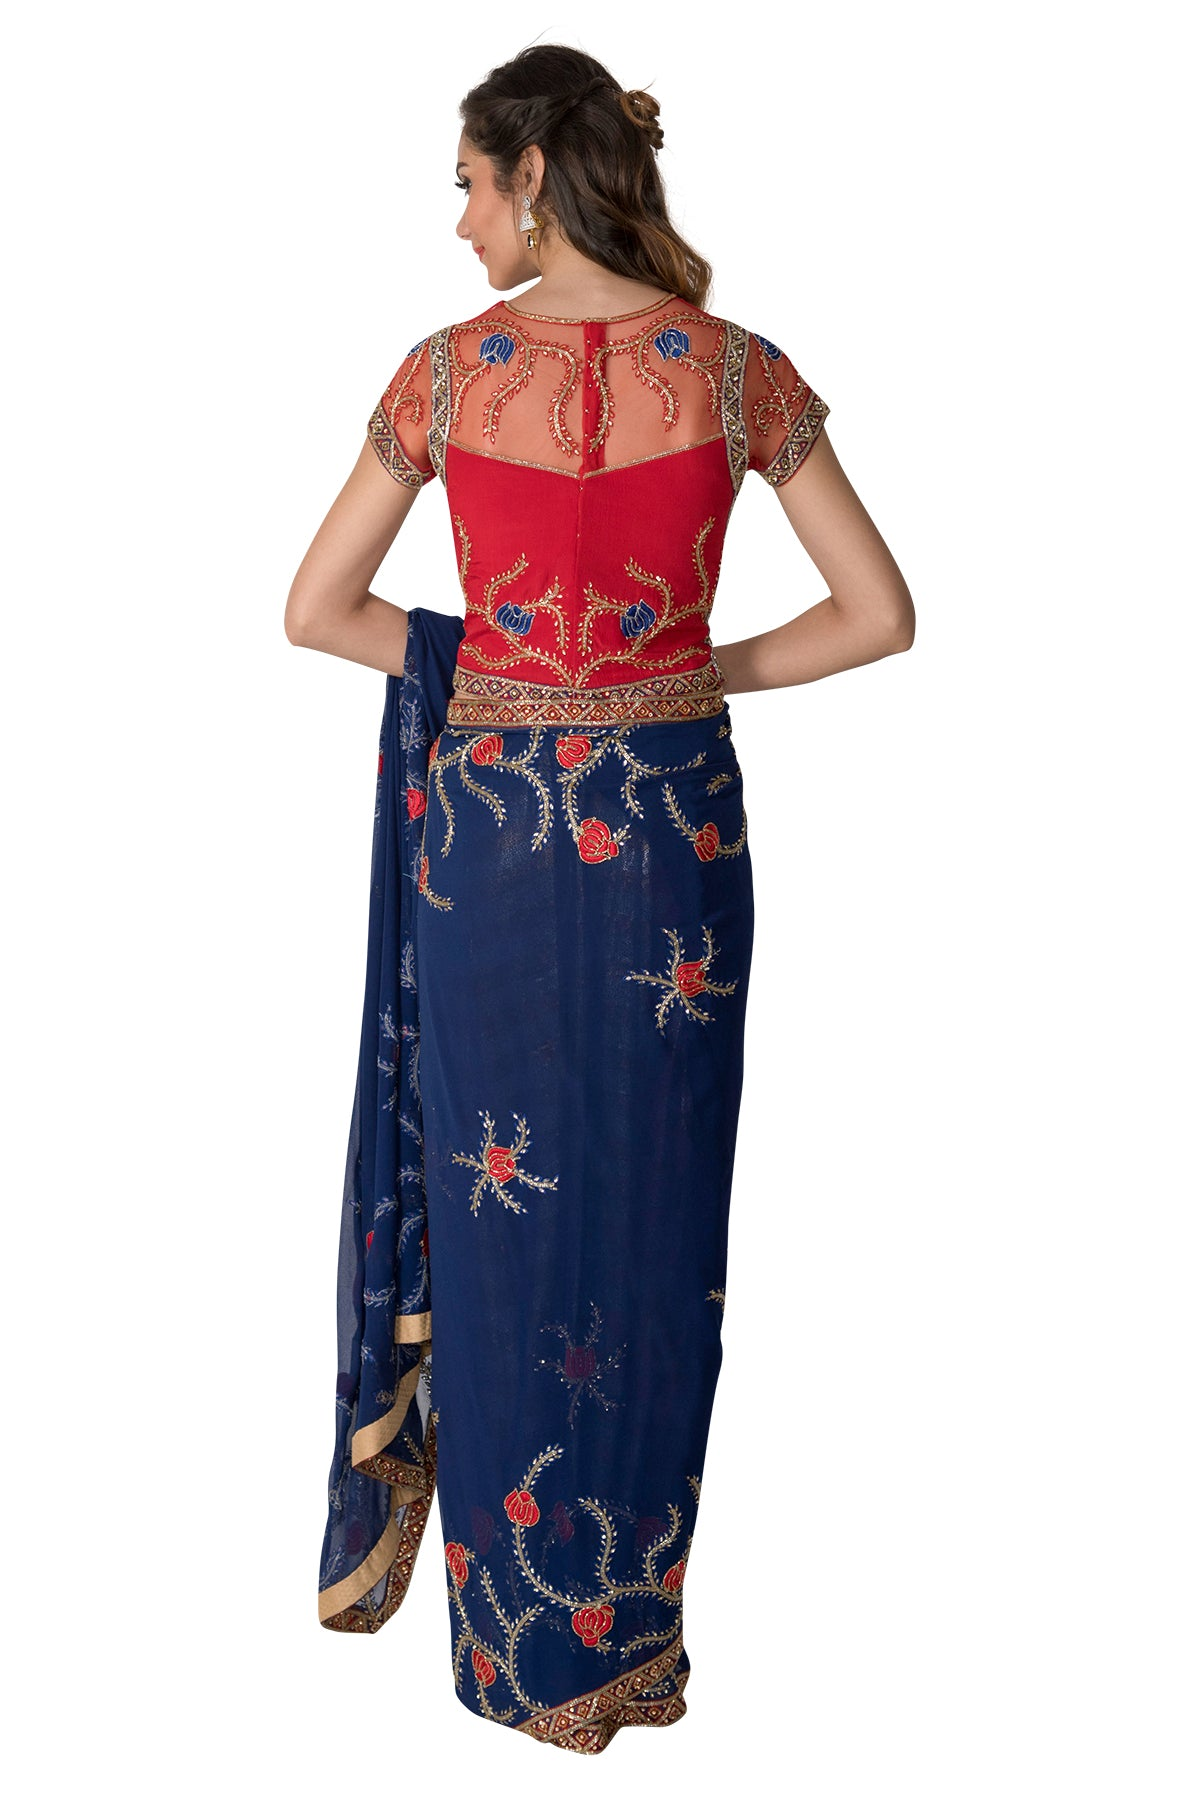 Royal Blue Saree With Red Flowers